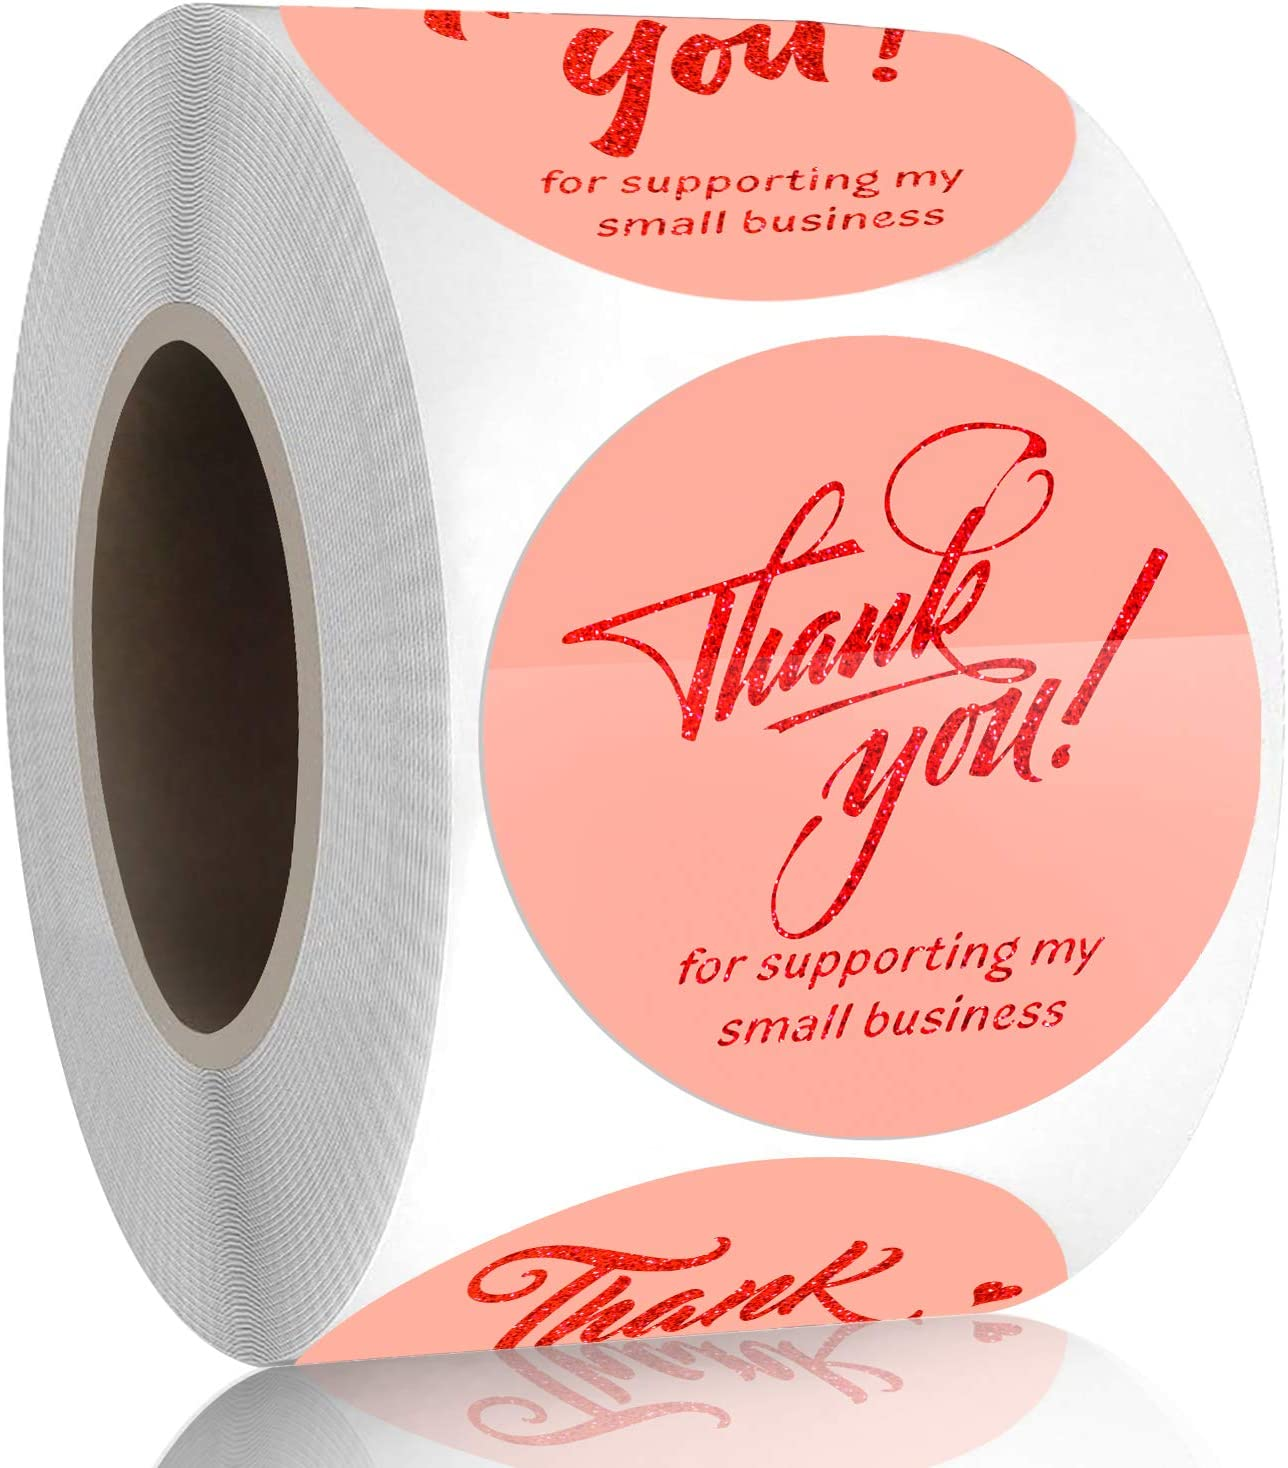 """Padike 1.5"""" Thank You for Supporting My Small Business Stickers, 4 Designs, Highly Recommended for Small Business Owners and Online Sellers, 500 Labels Per Roll (Pink & Glitter red Gold, 1.5inch)"""